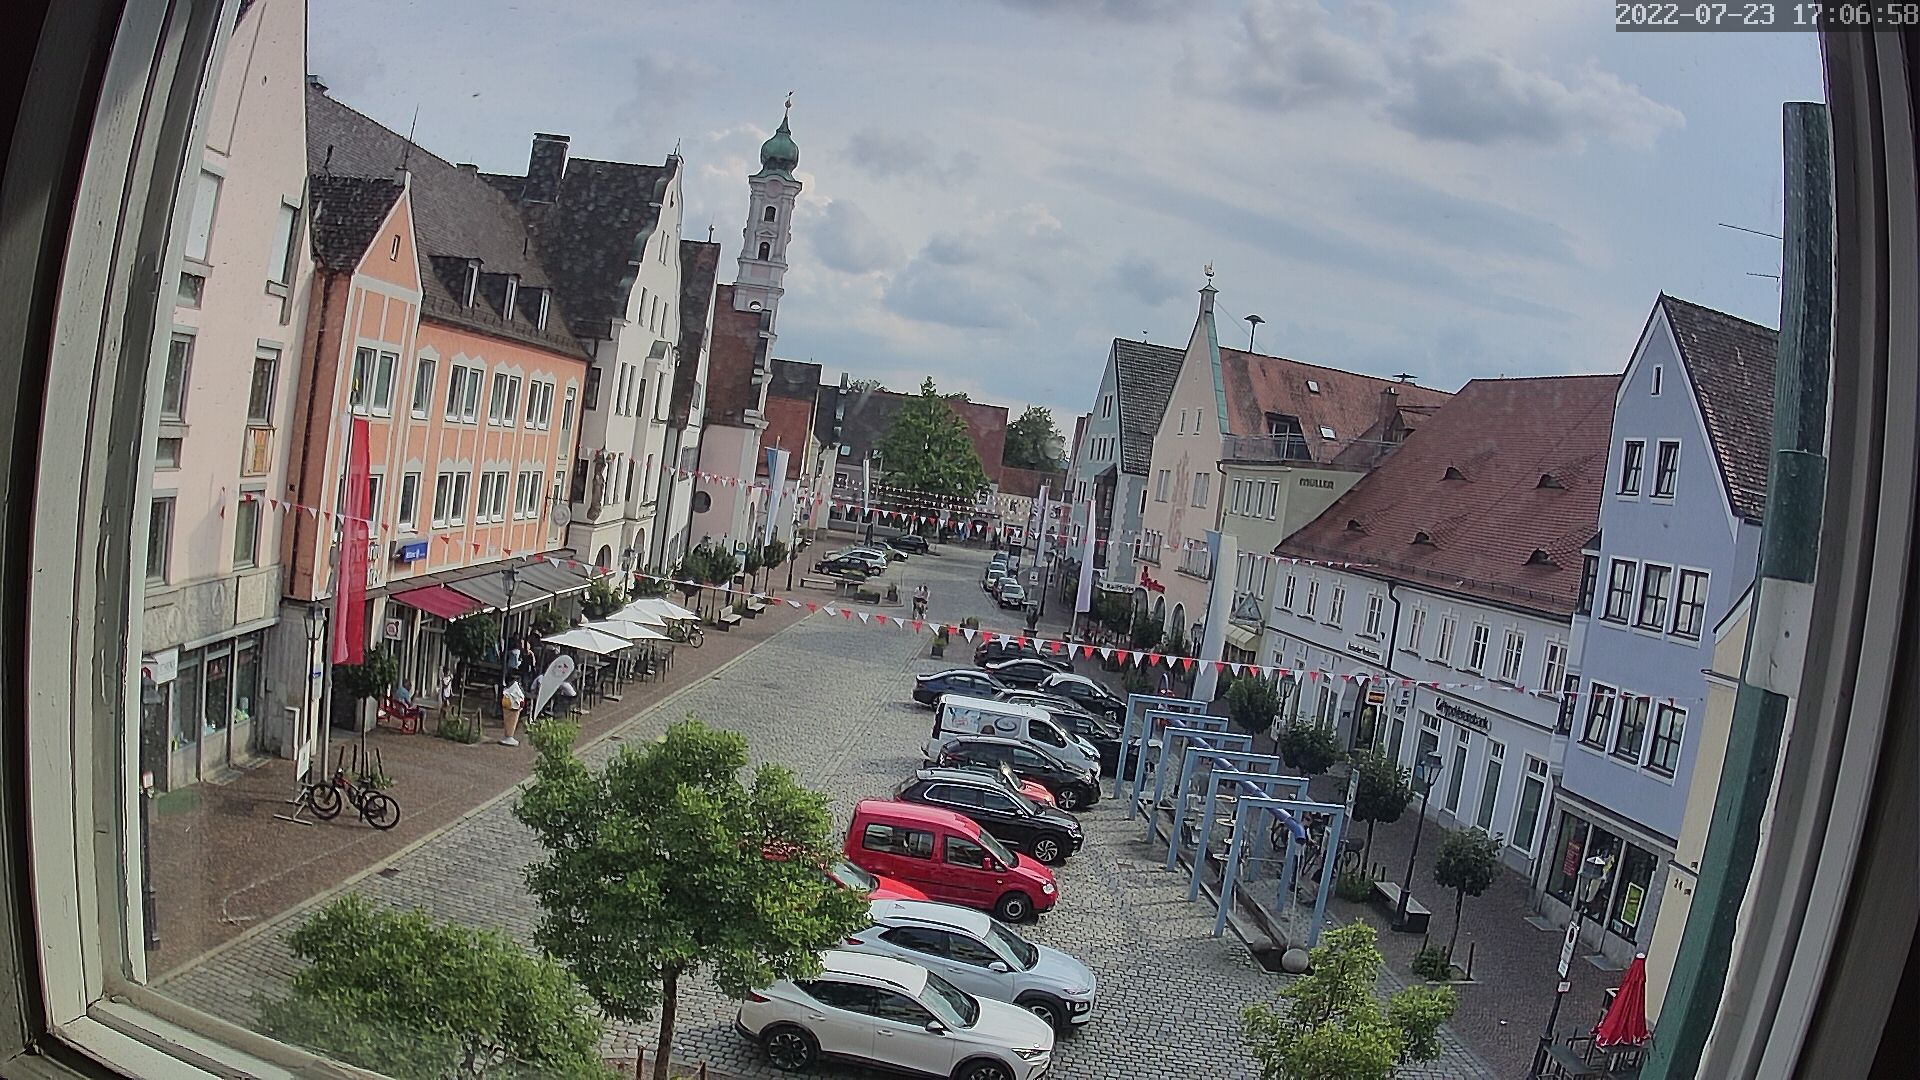 Aichach City Center, Stadtplatz